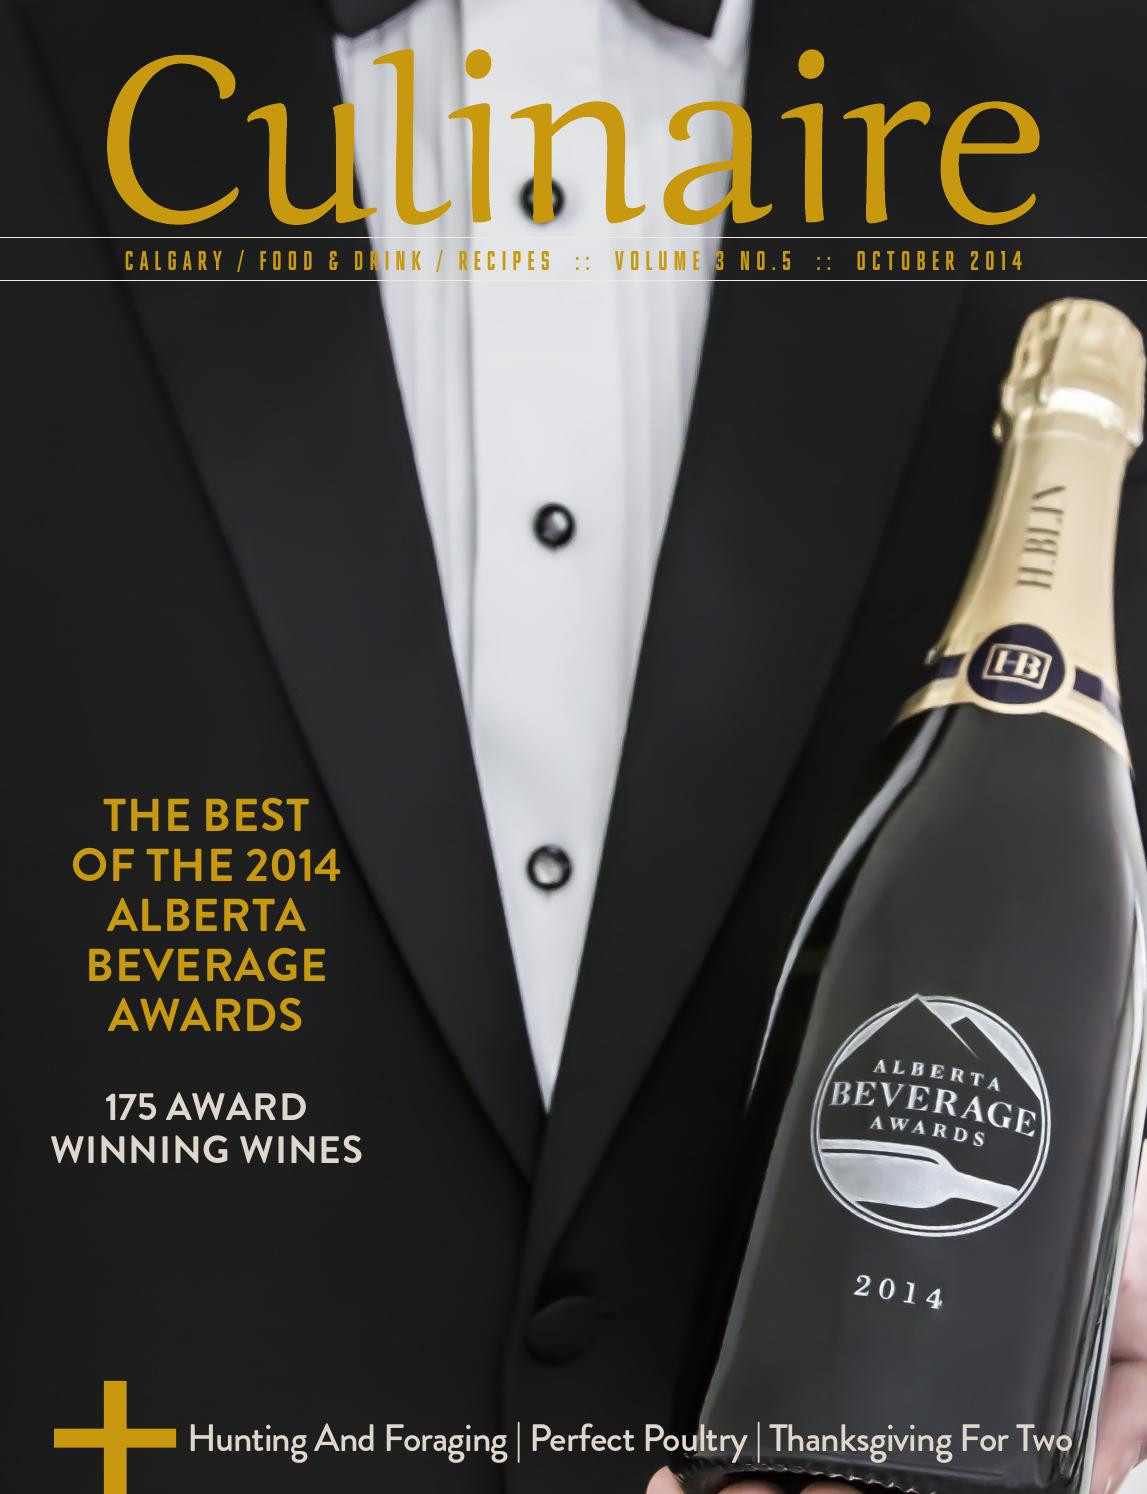 Culinaire 3 5 october 2014 by culinaire magazine issuu for Culinaire